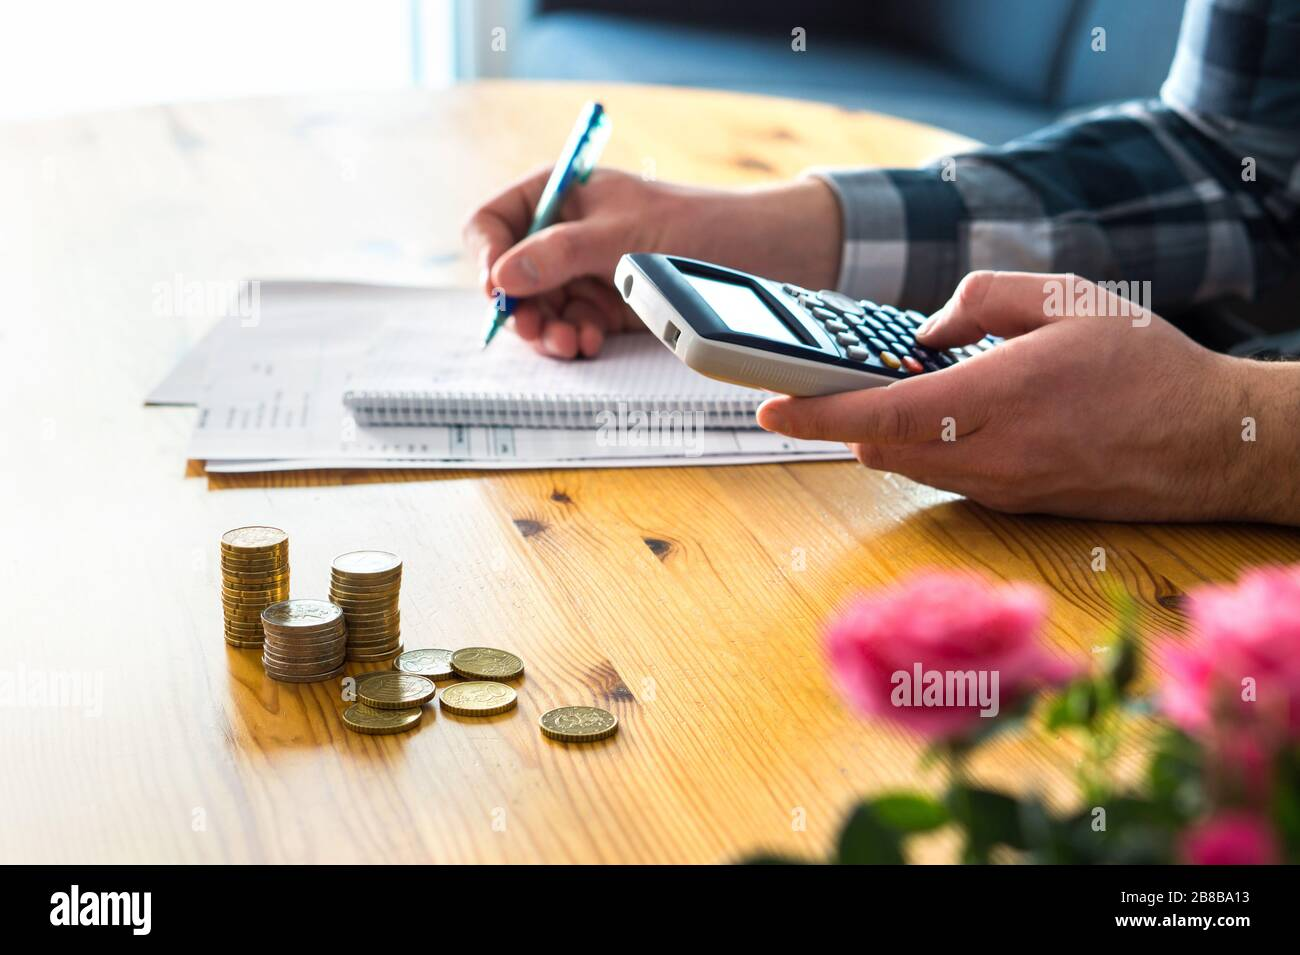 Man using calculator and counting budget, expenses and savings. Low income family living cost and rising prices concept. Calculating and budgeting. Stock Photo